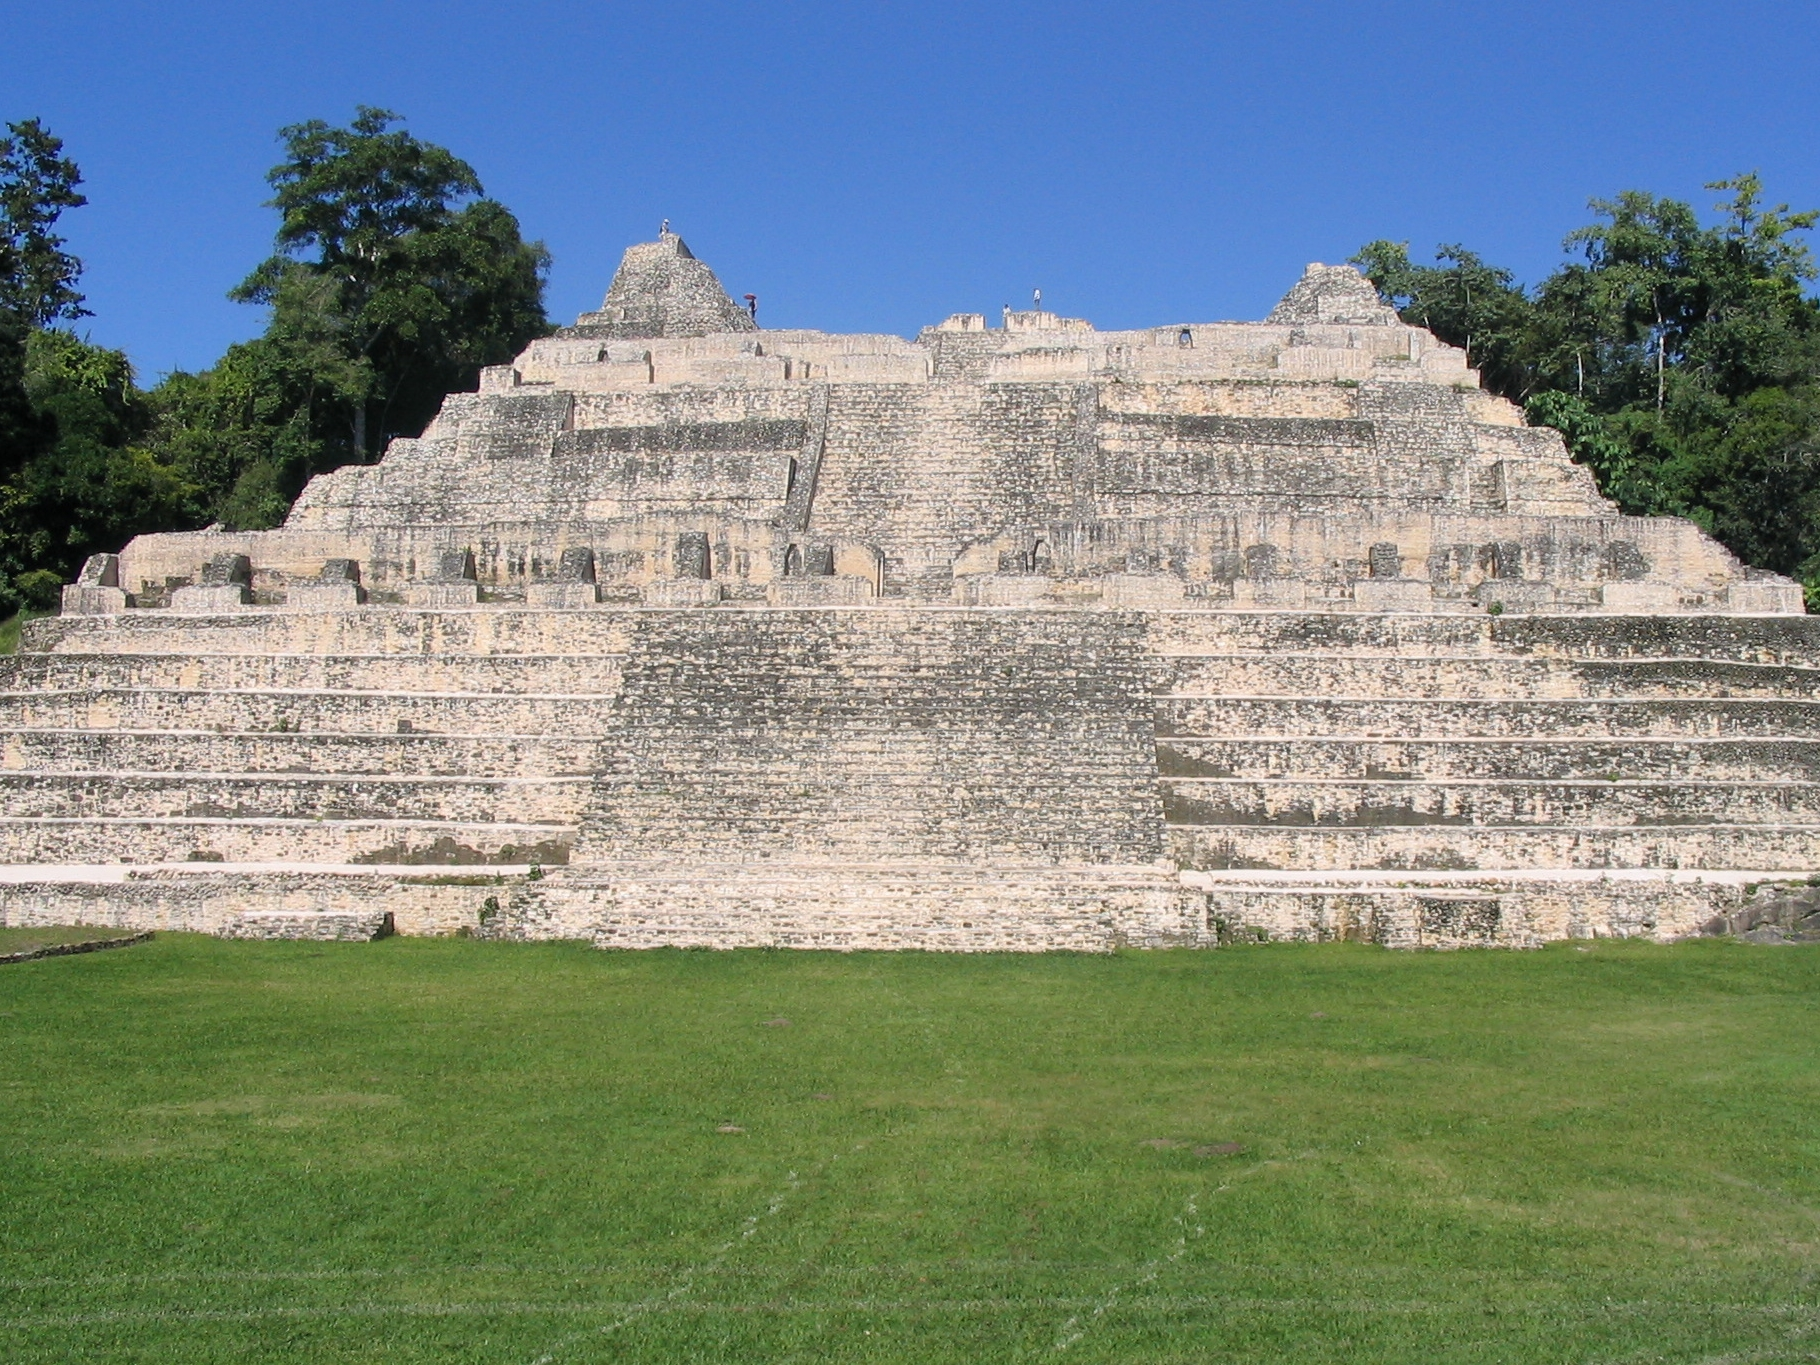 The Ka'ana Temple at the Caracol Maya site towers above the forest